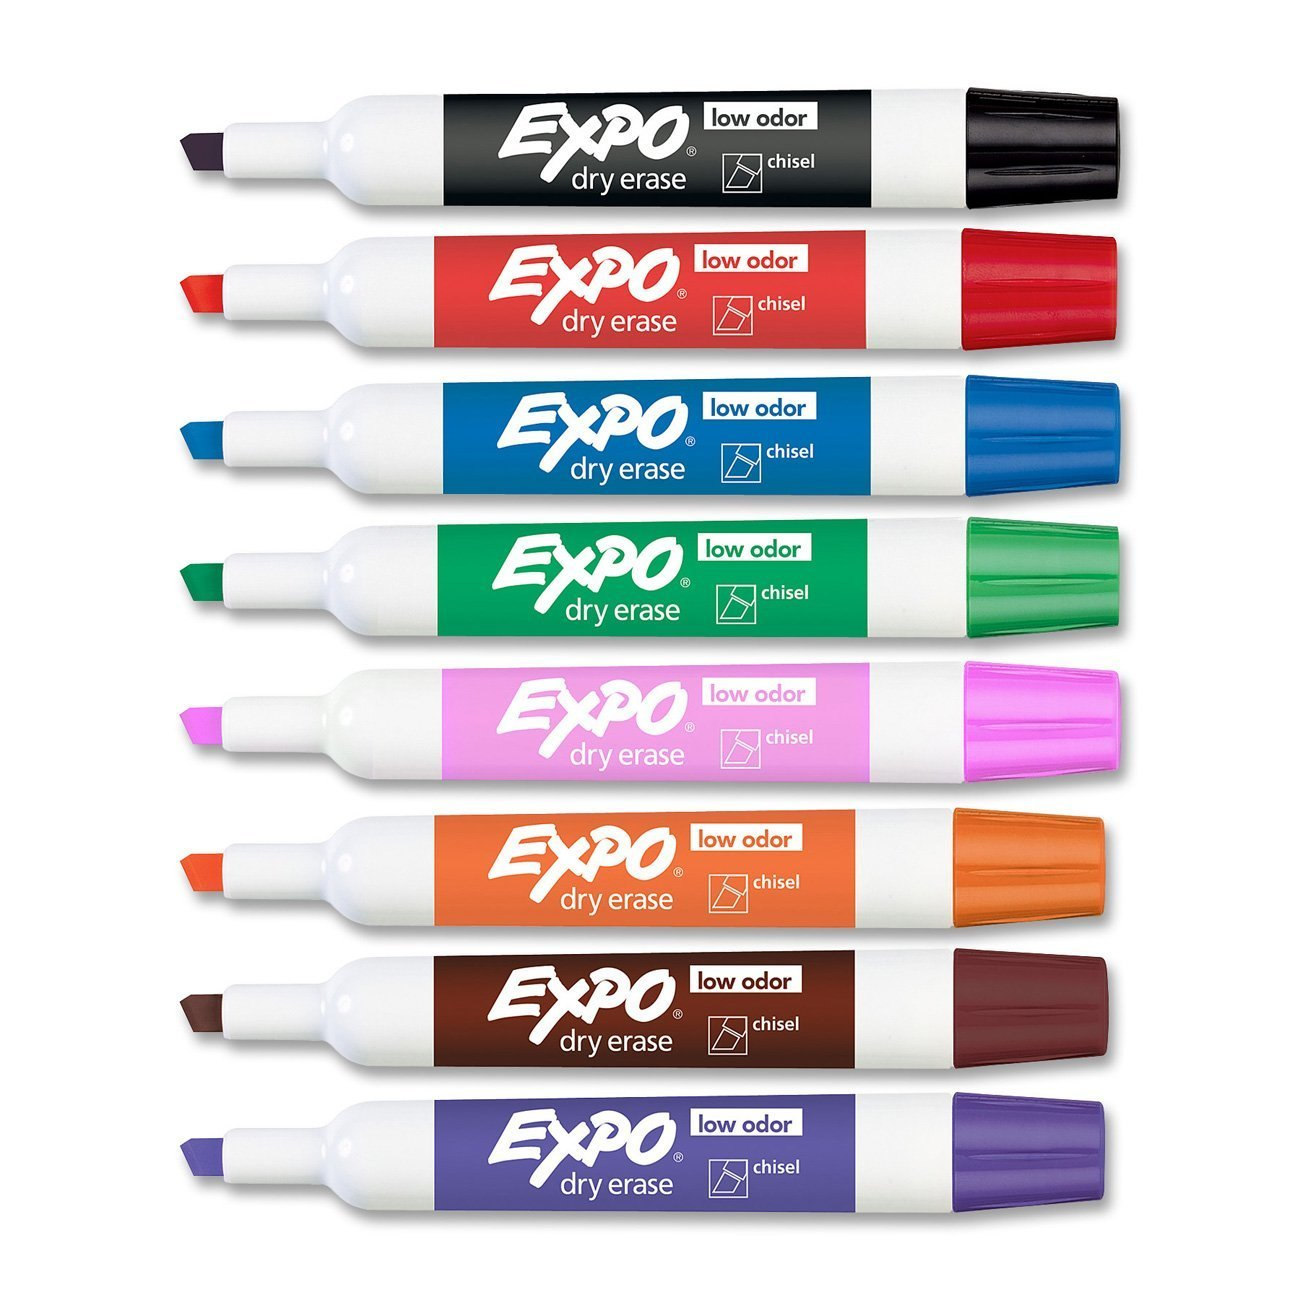 Expo 80078 Low Odor Dry Erase Markers, Chisel Tip, Assorted Colors, 12 Sets with 8 Markers, Total of 96 Markers by Expo (Image #1)